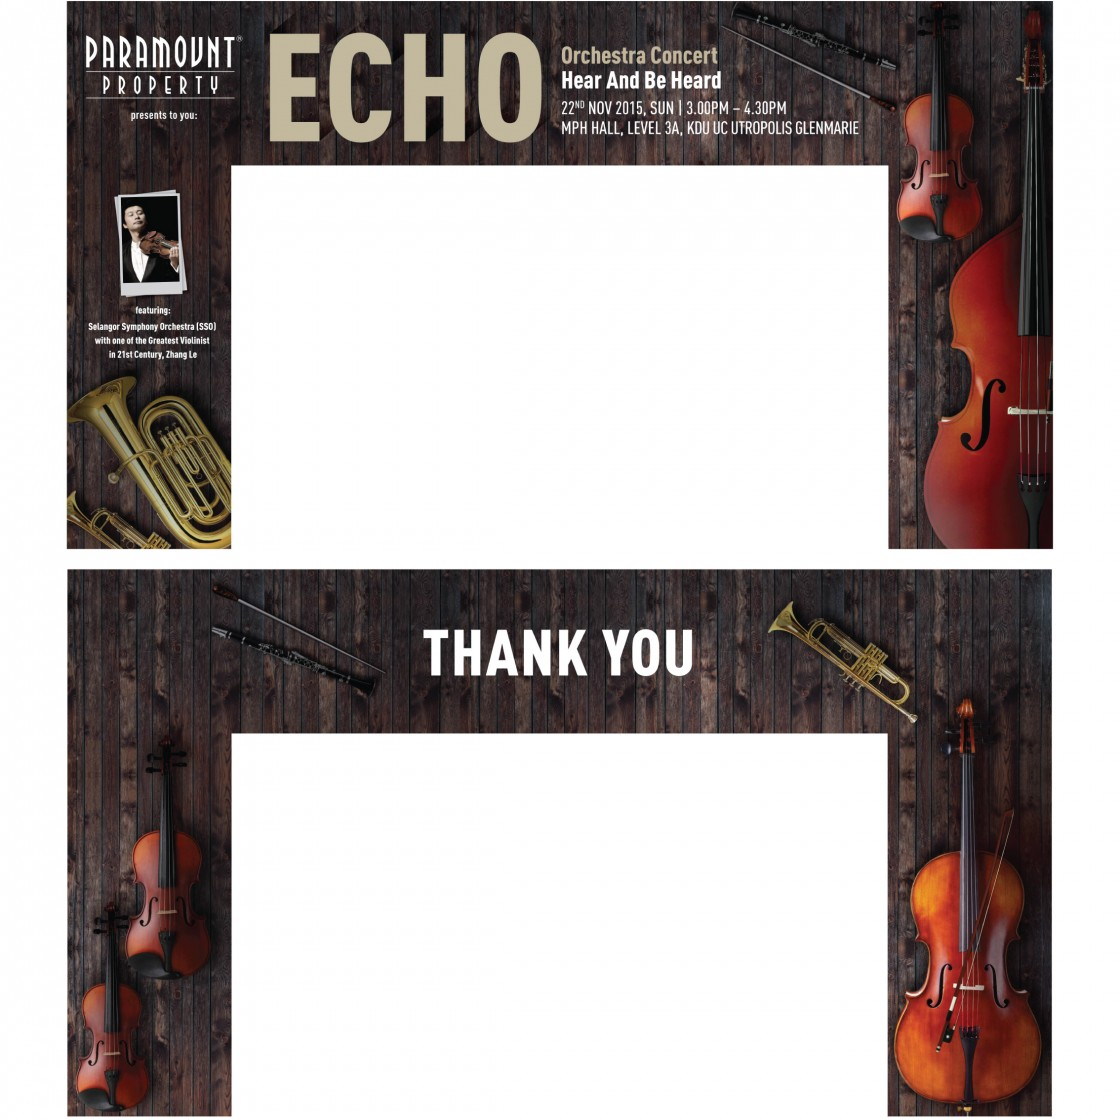 ECHO-welcome-arch-front&back